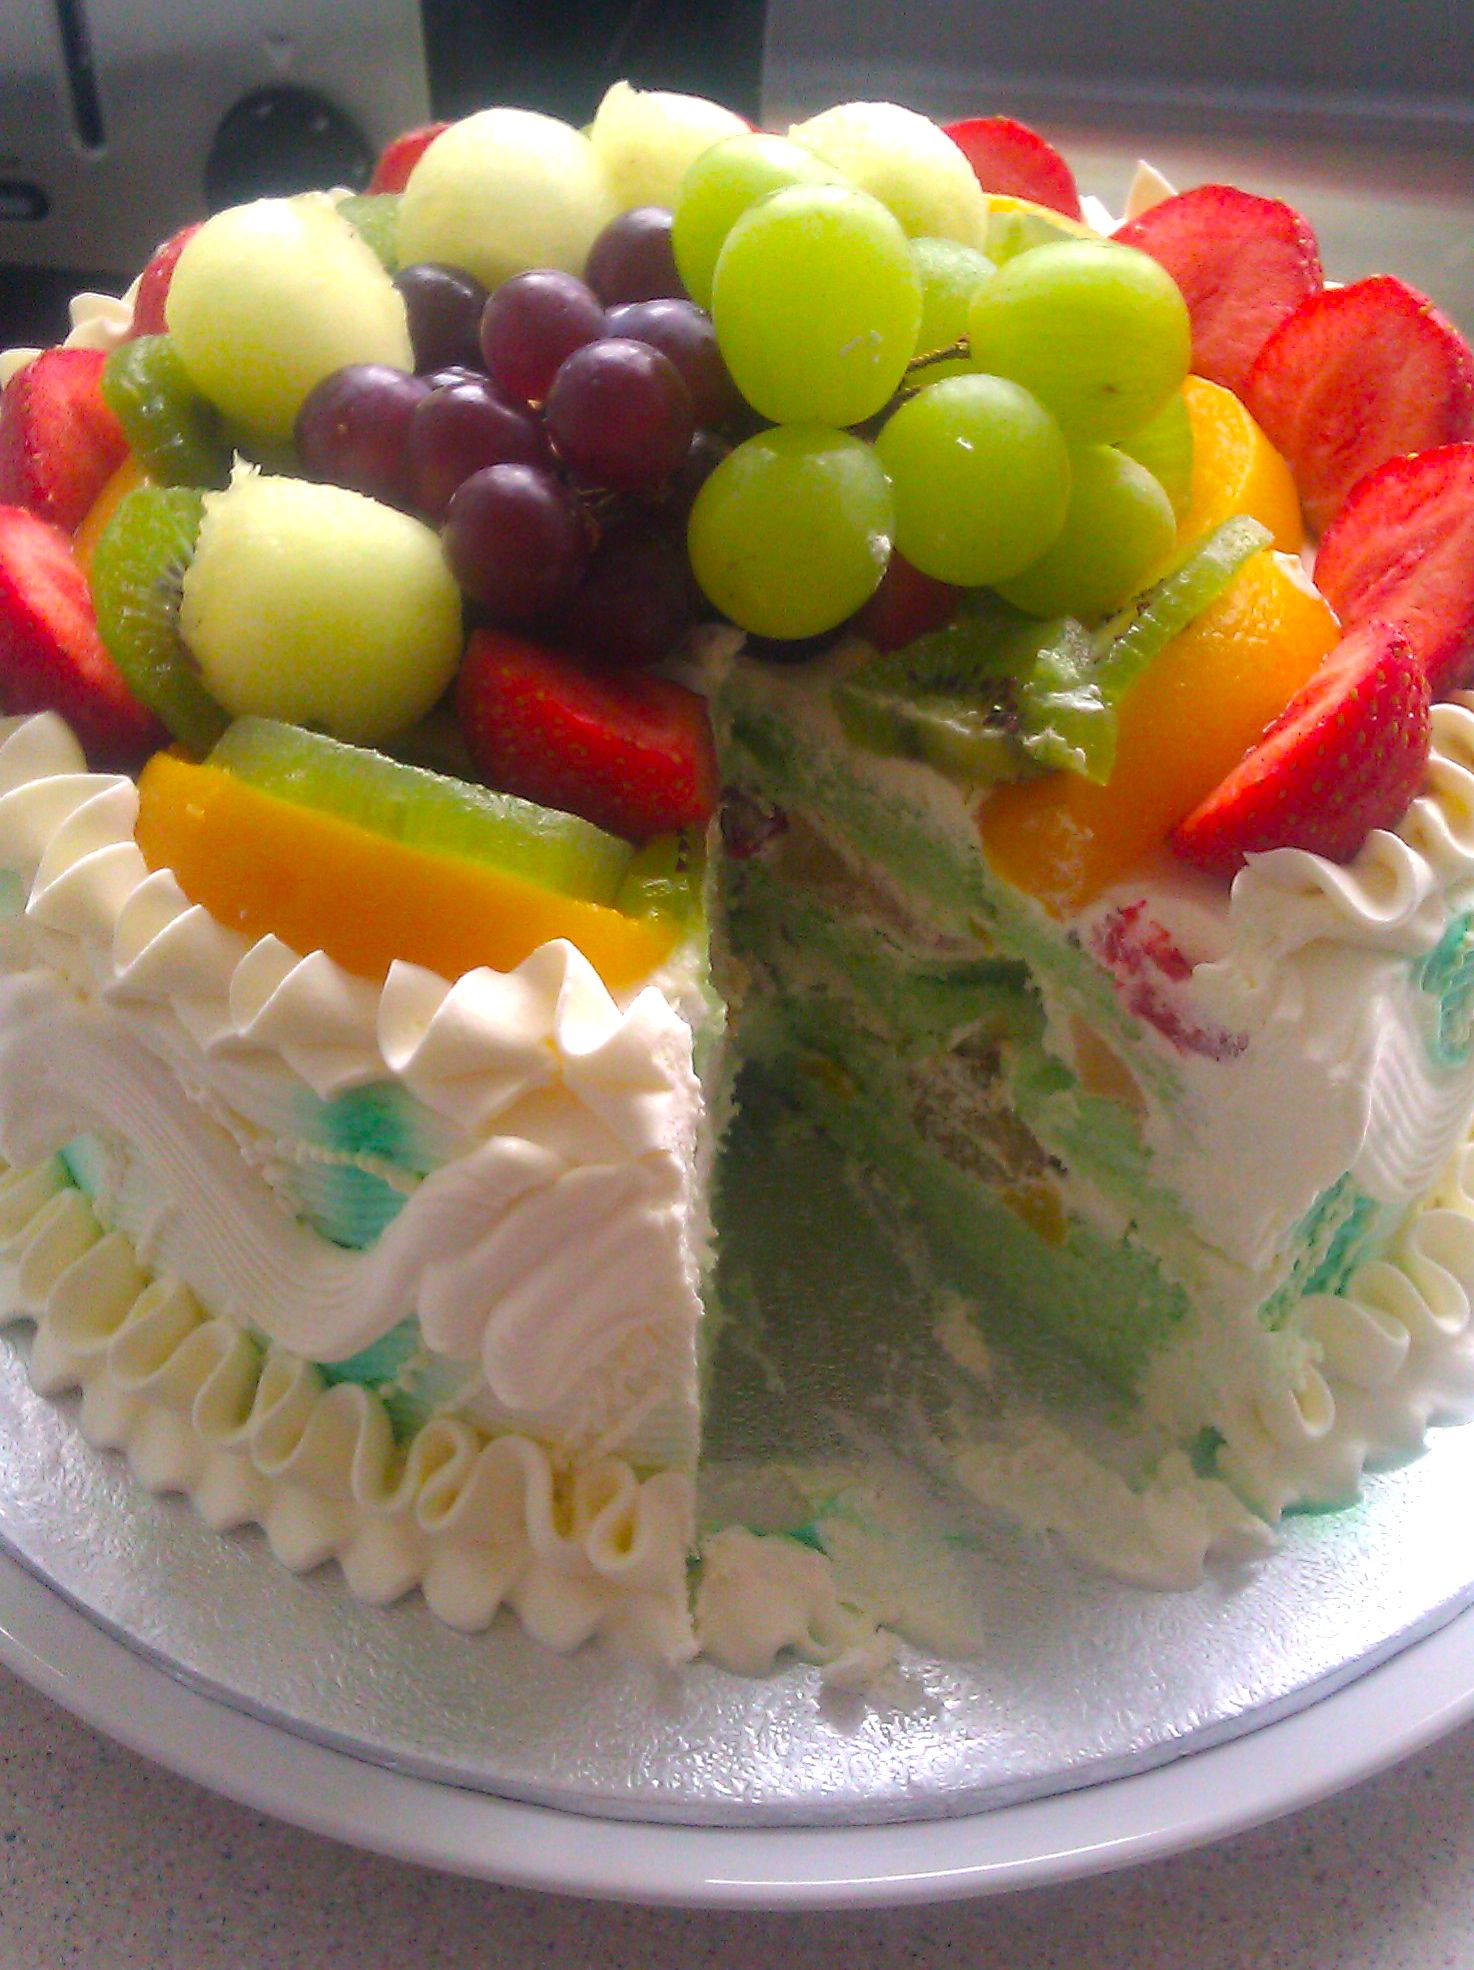 Have you ever seen such a colourful cake? Thanks for sharing your birthday cake with us Shahbhaz .